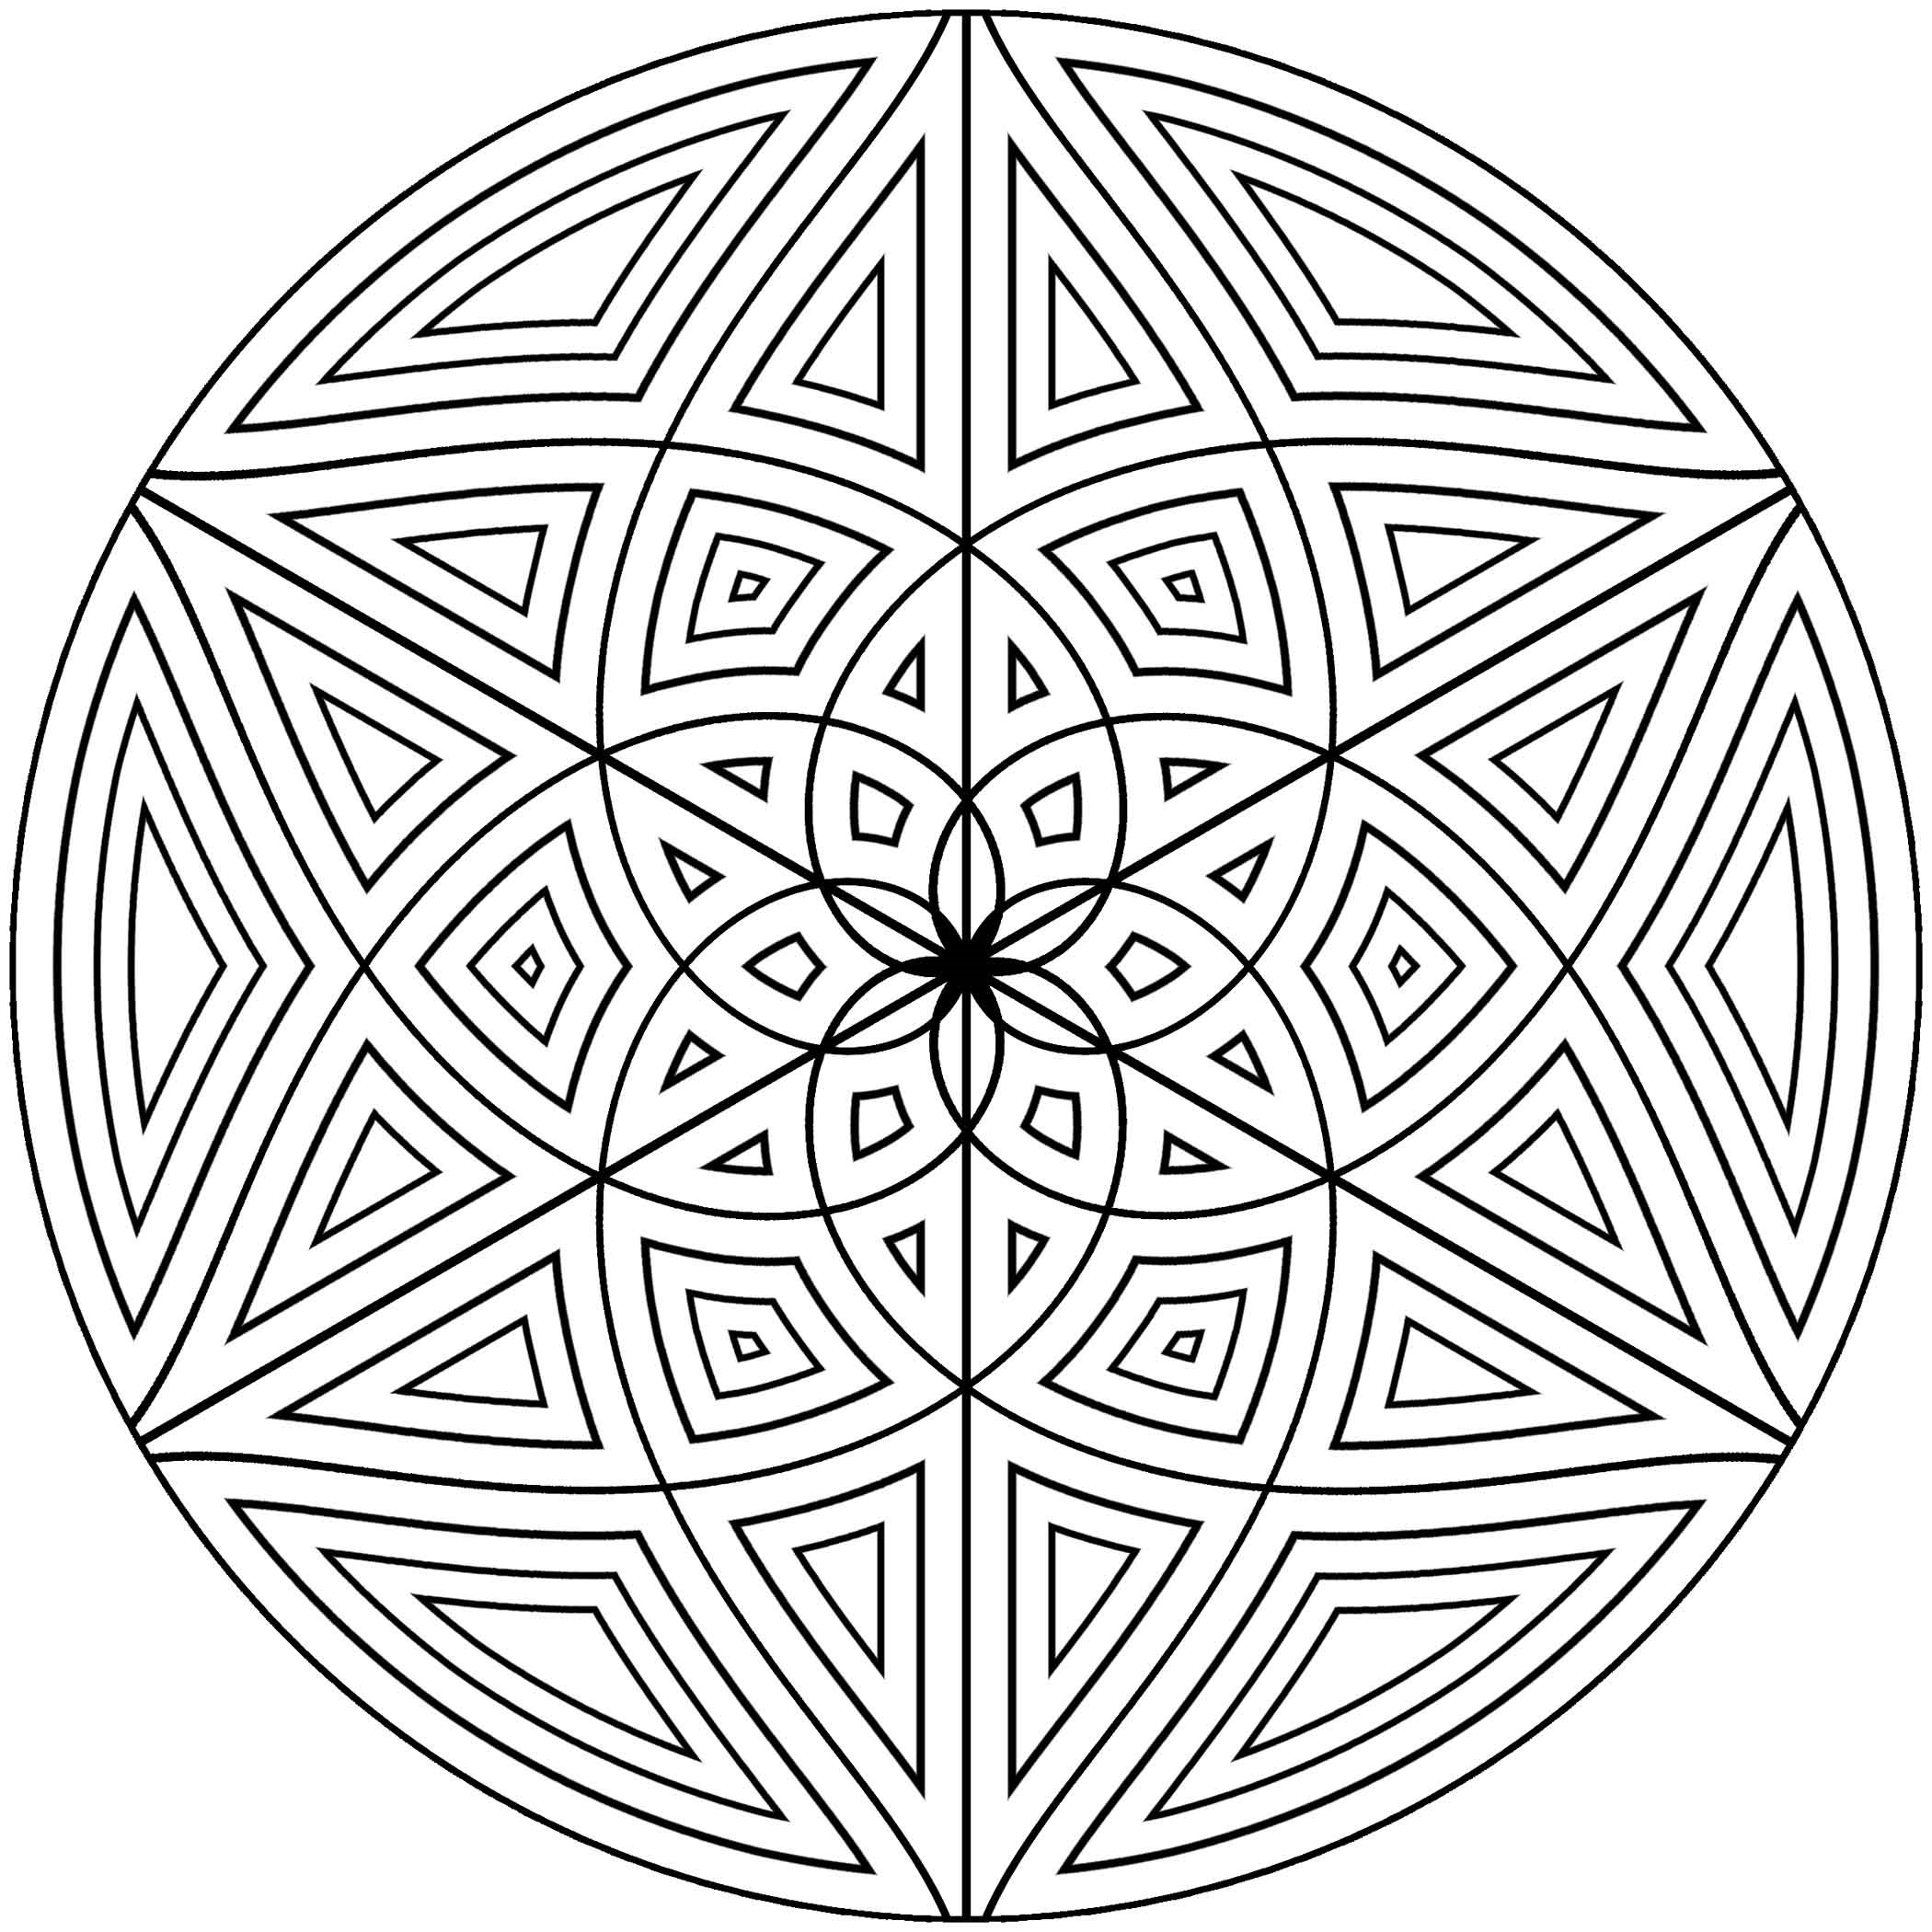 coloring designs free geometric design coloring pages to download and print for free designs free coloring